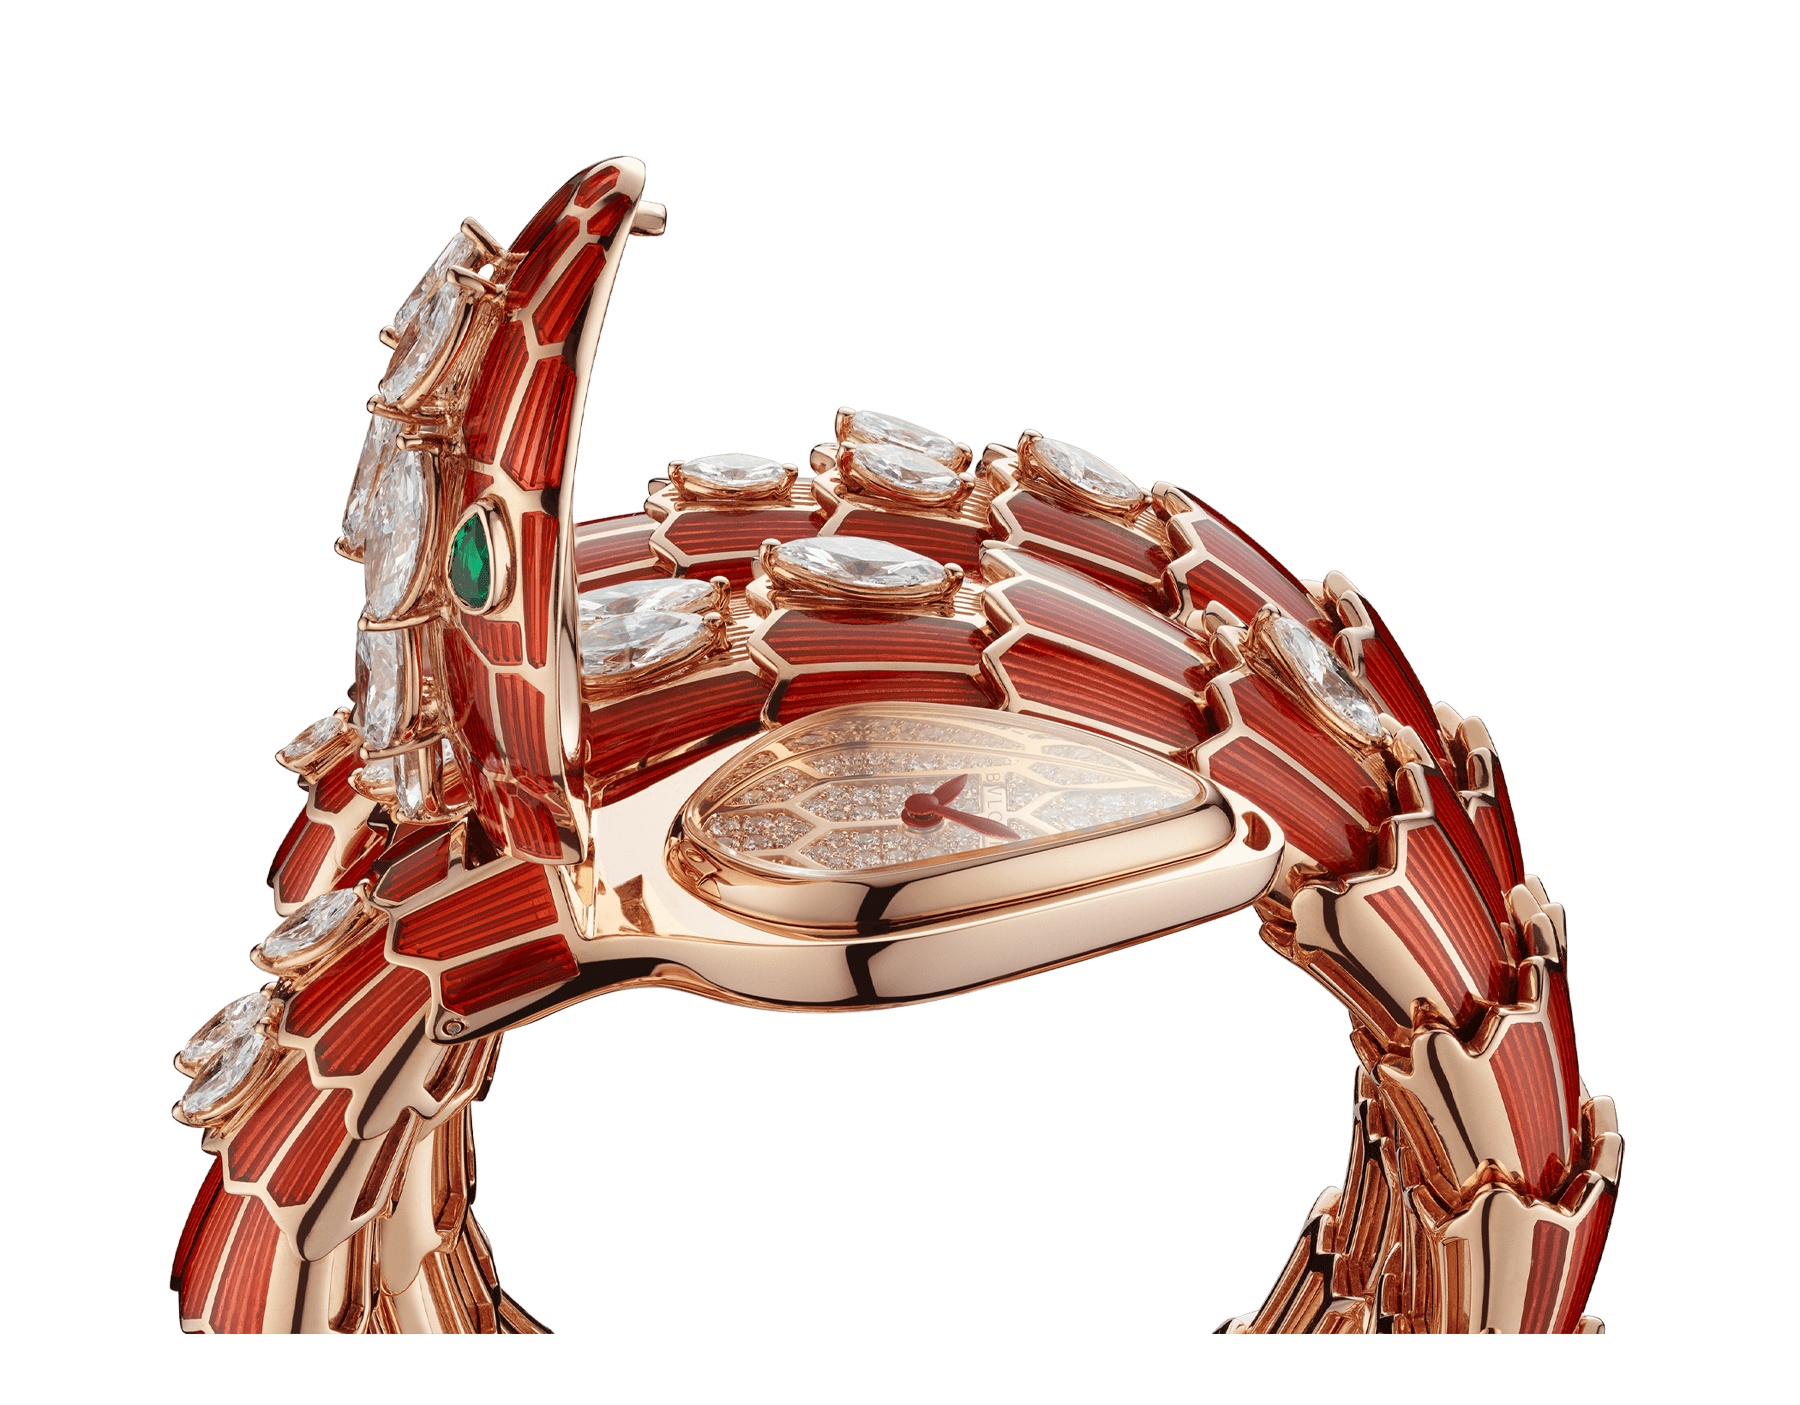 Serpenti Secret Watch with 18 kt rose gold head and double spiral bracelet, both coated with red lacquer and set with marquise-cut diamonds, emerald eyes and 18 kt rose gold dial set with brilliant cut diamonds. 102527 image 3